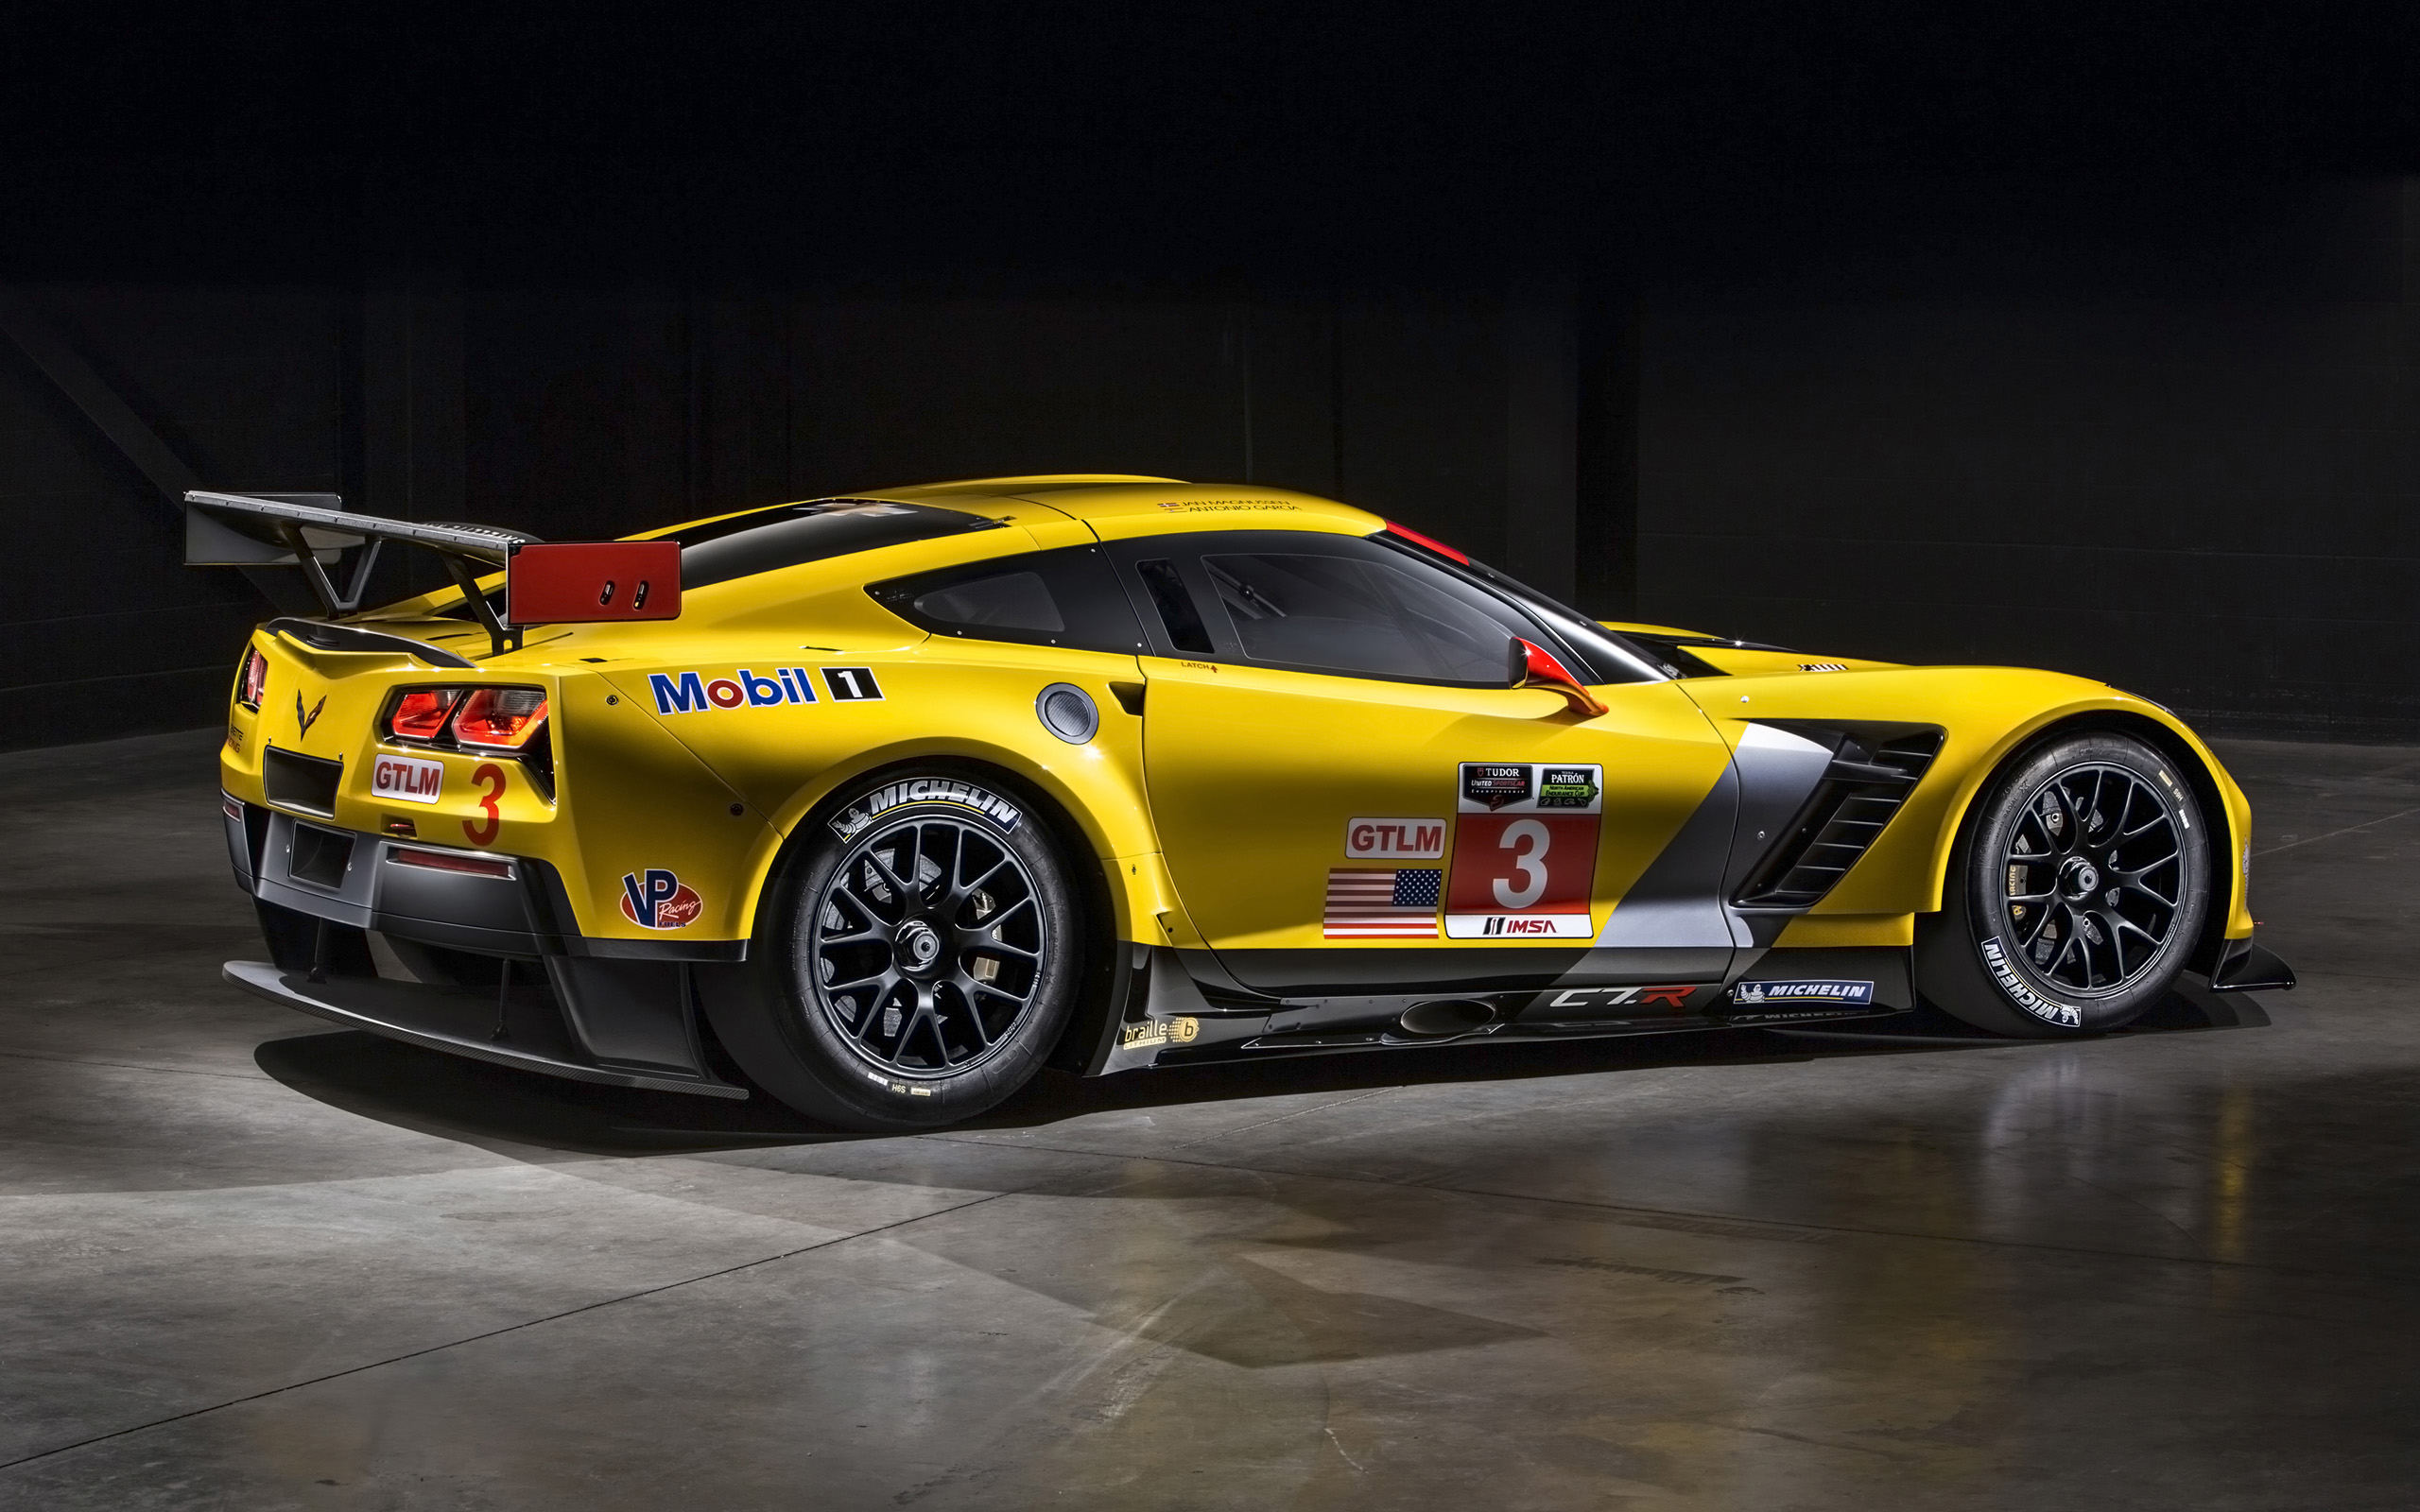 2014 Chevrolet Corvette C7 R 2 Wallpaper HD Car Wallpapers 2560x1600